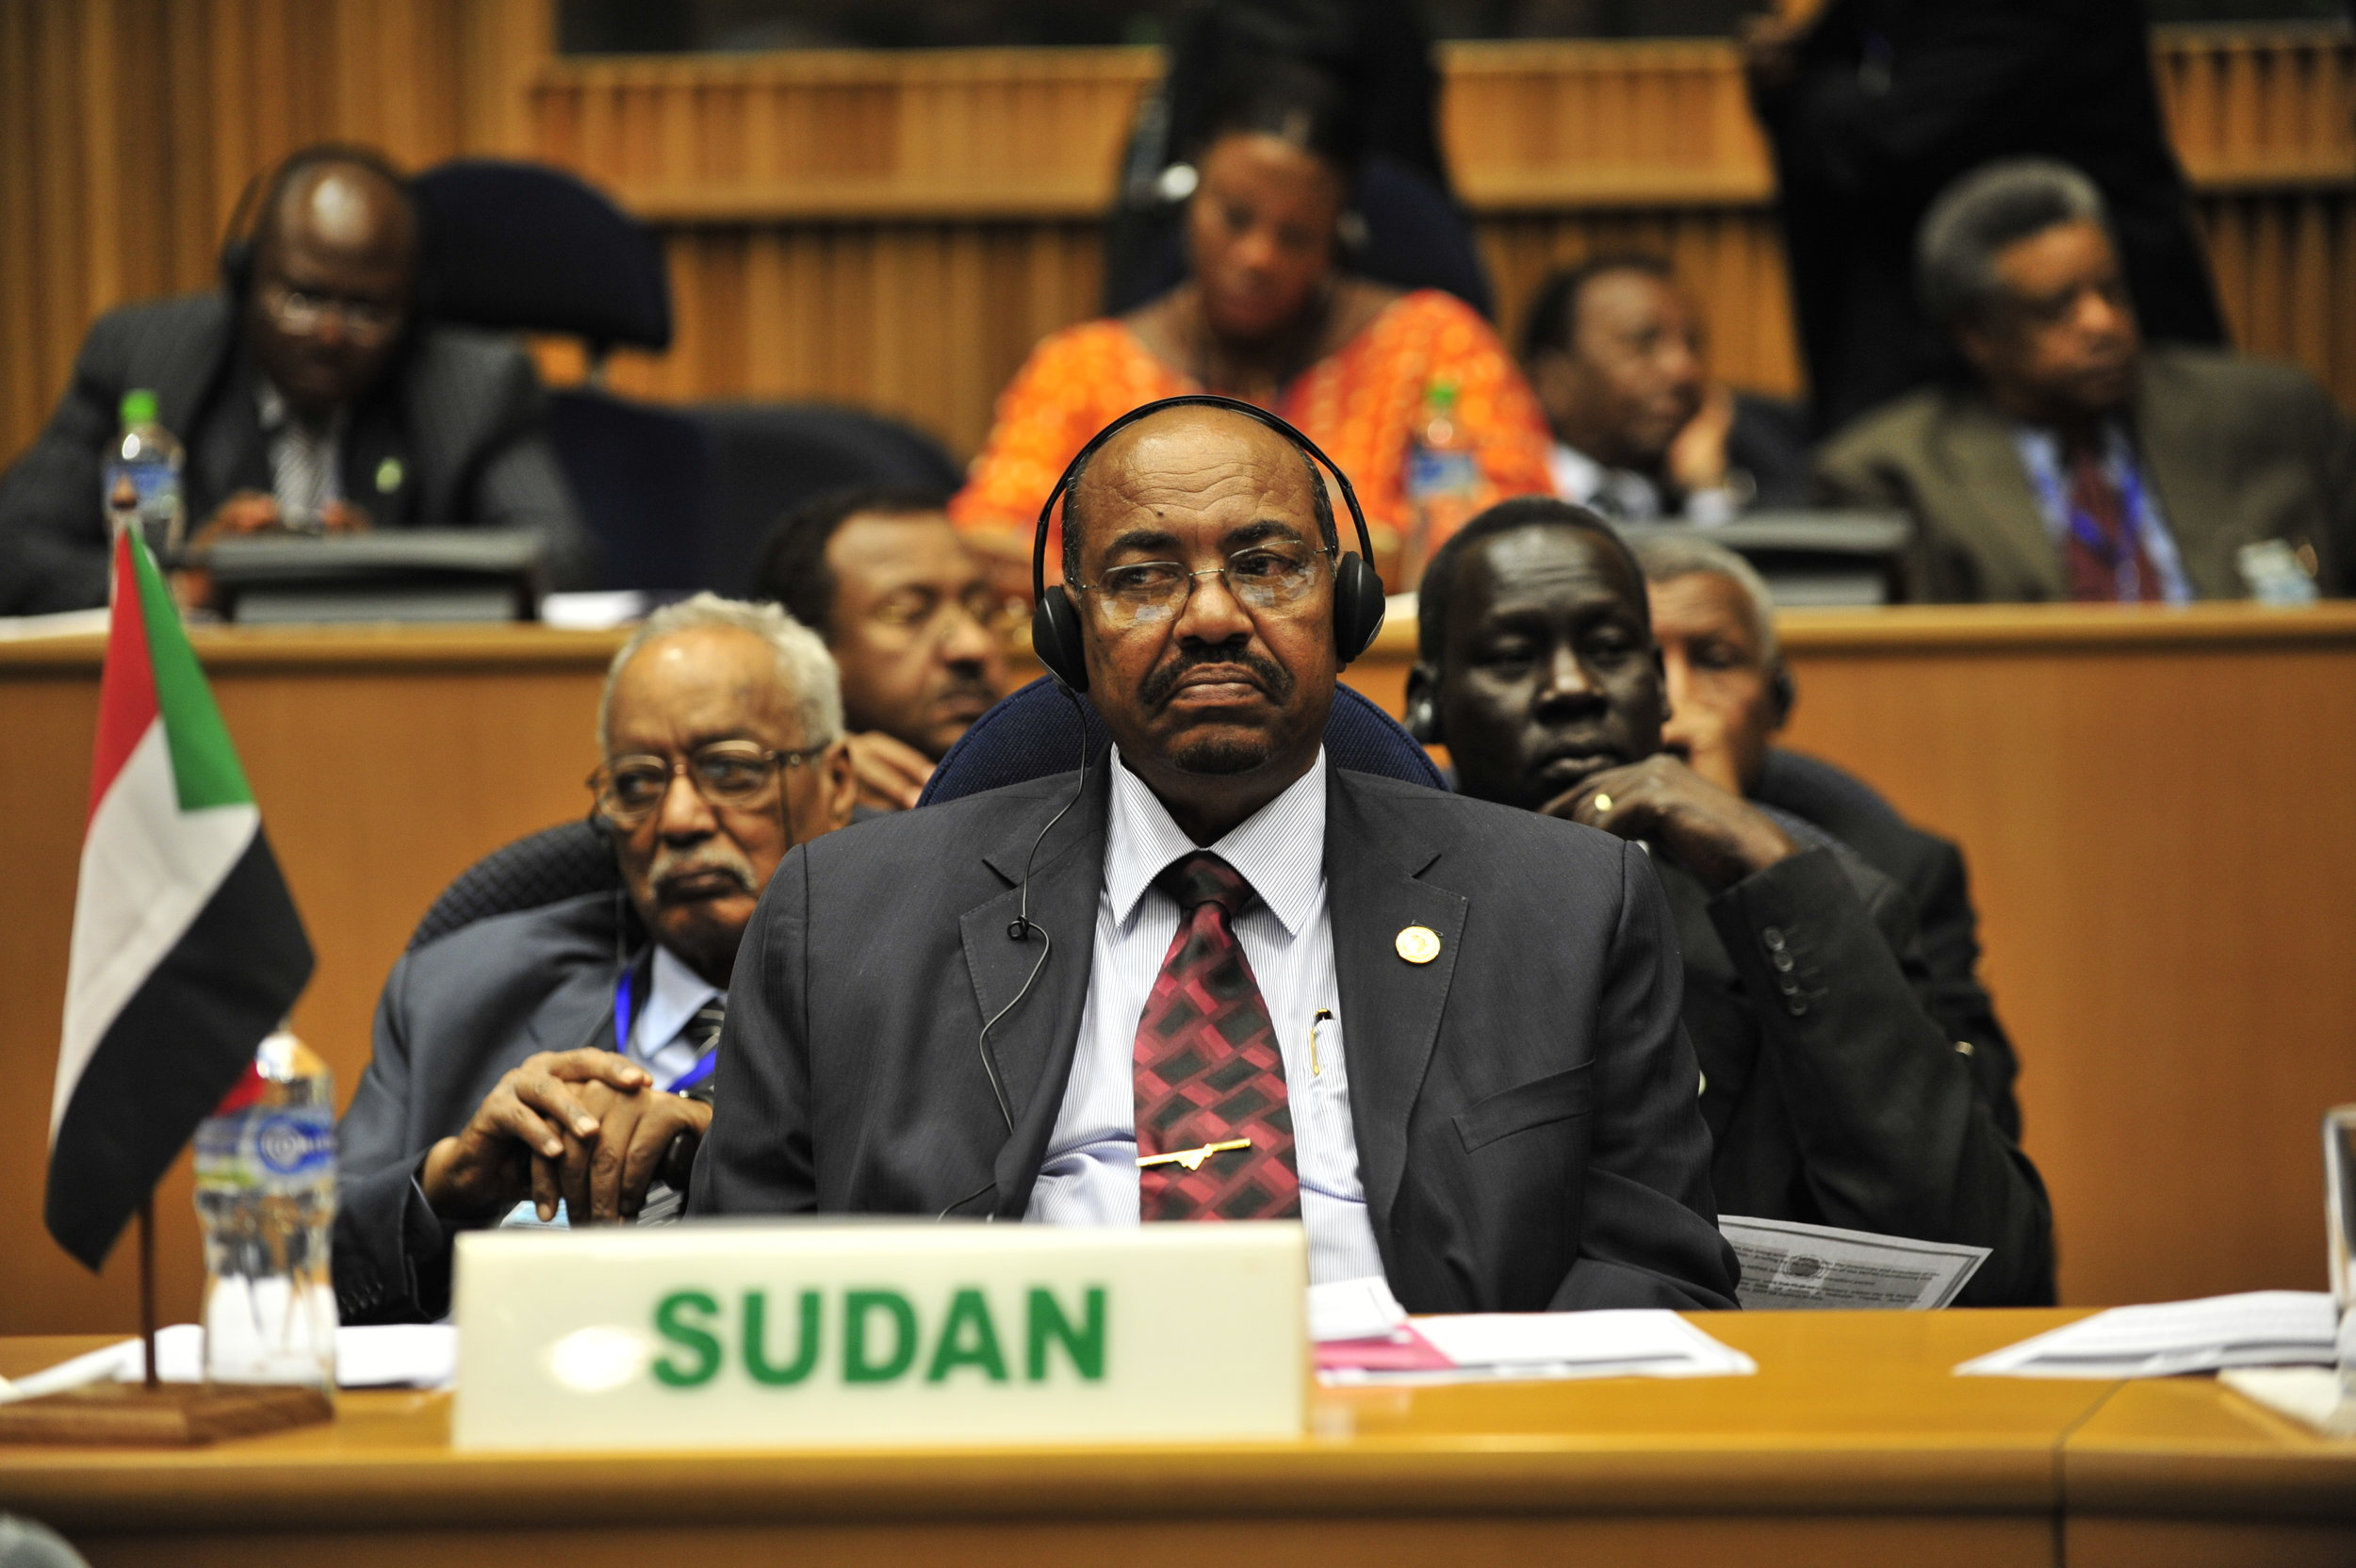 Photo courtesy of WikiCommons Former Sudanese President Omar al-Bashir at the opening of the 20th session of the New Partnership for Africa's Development in 2009.